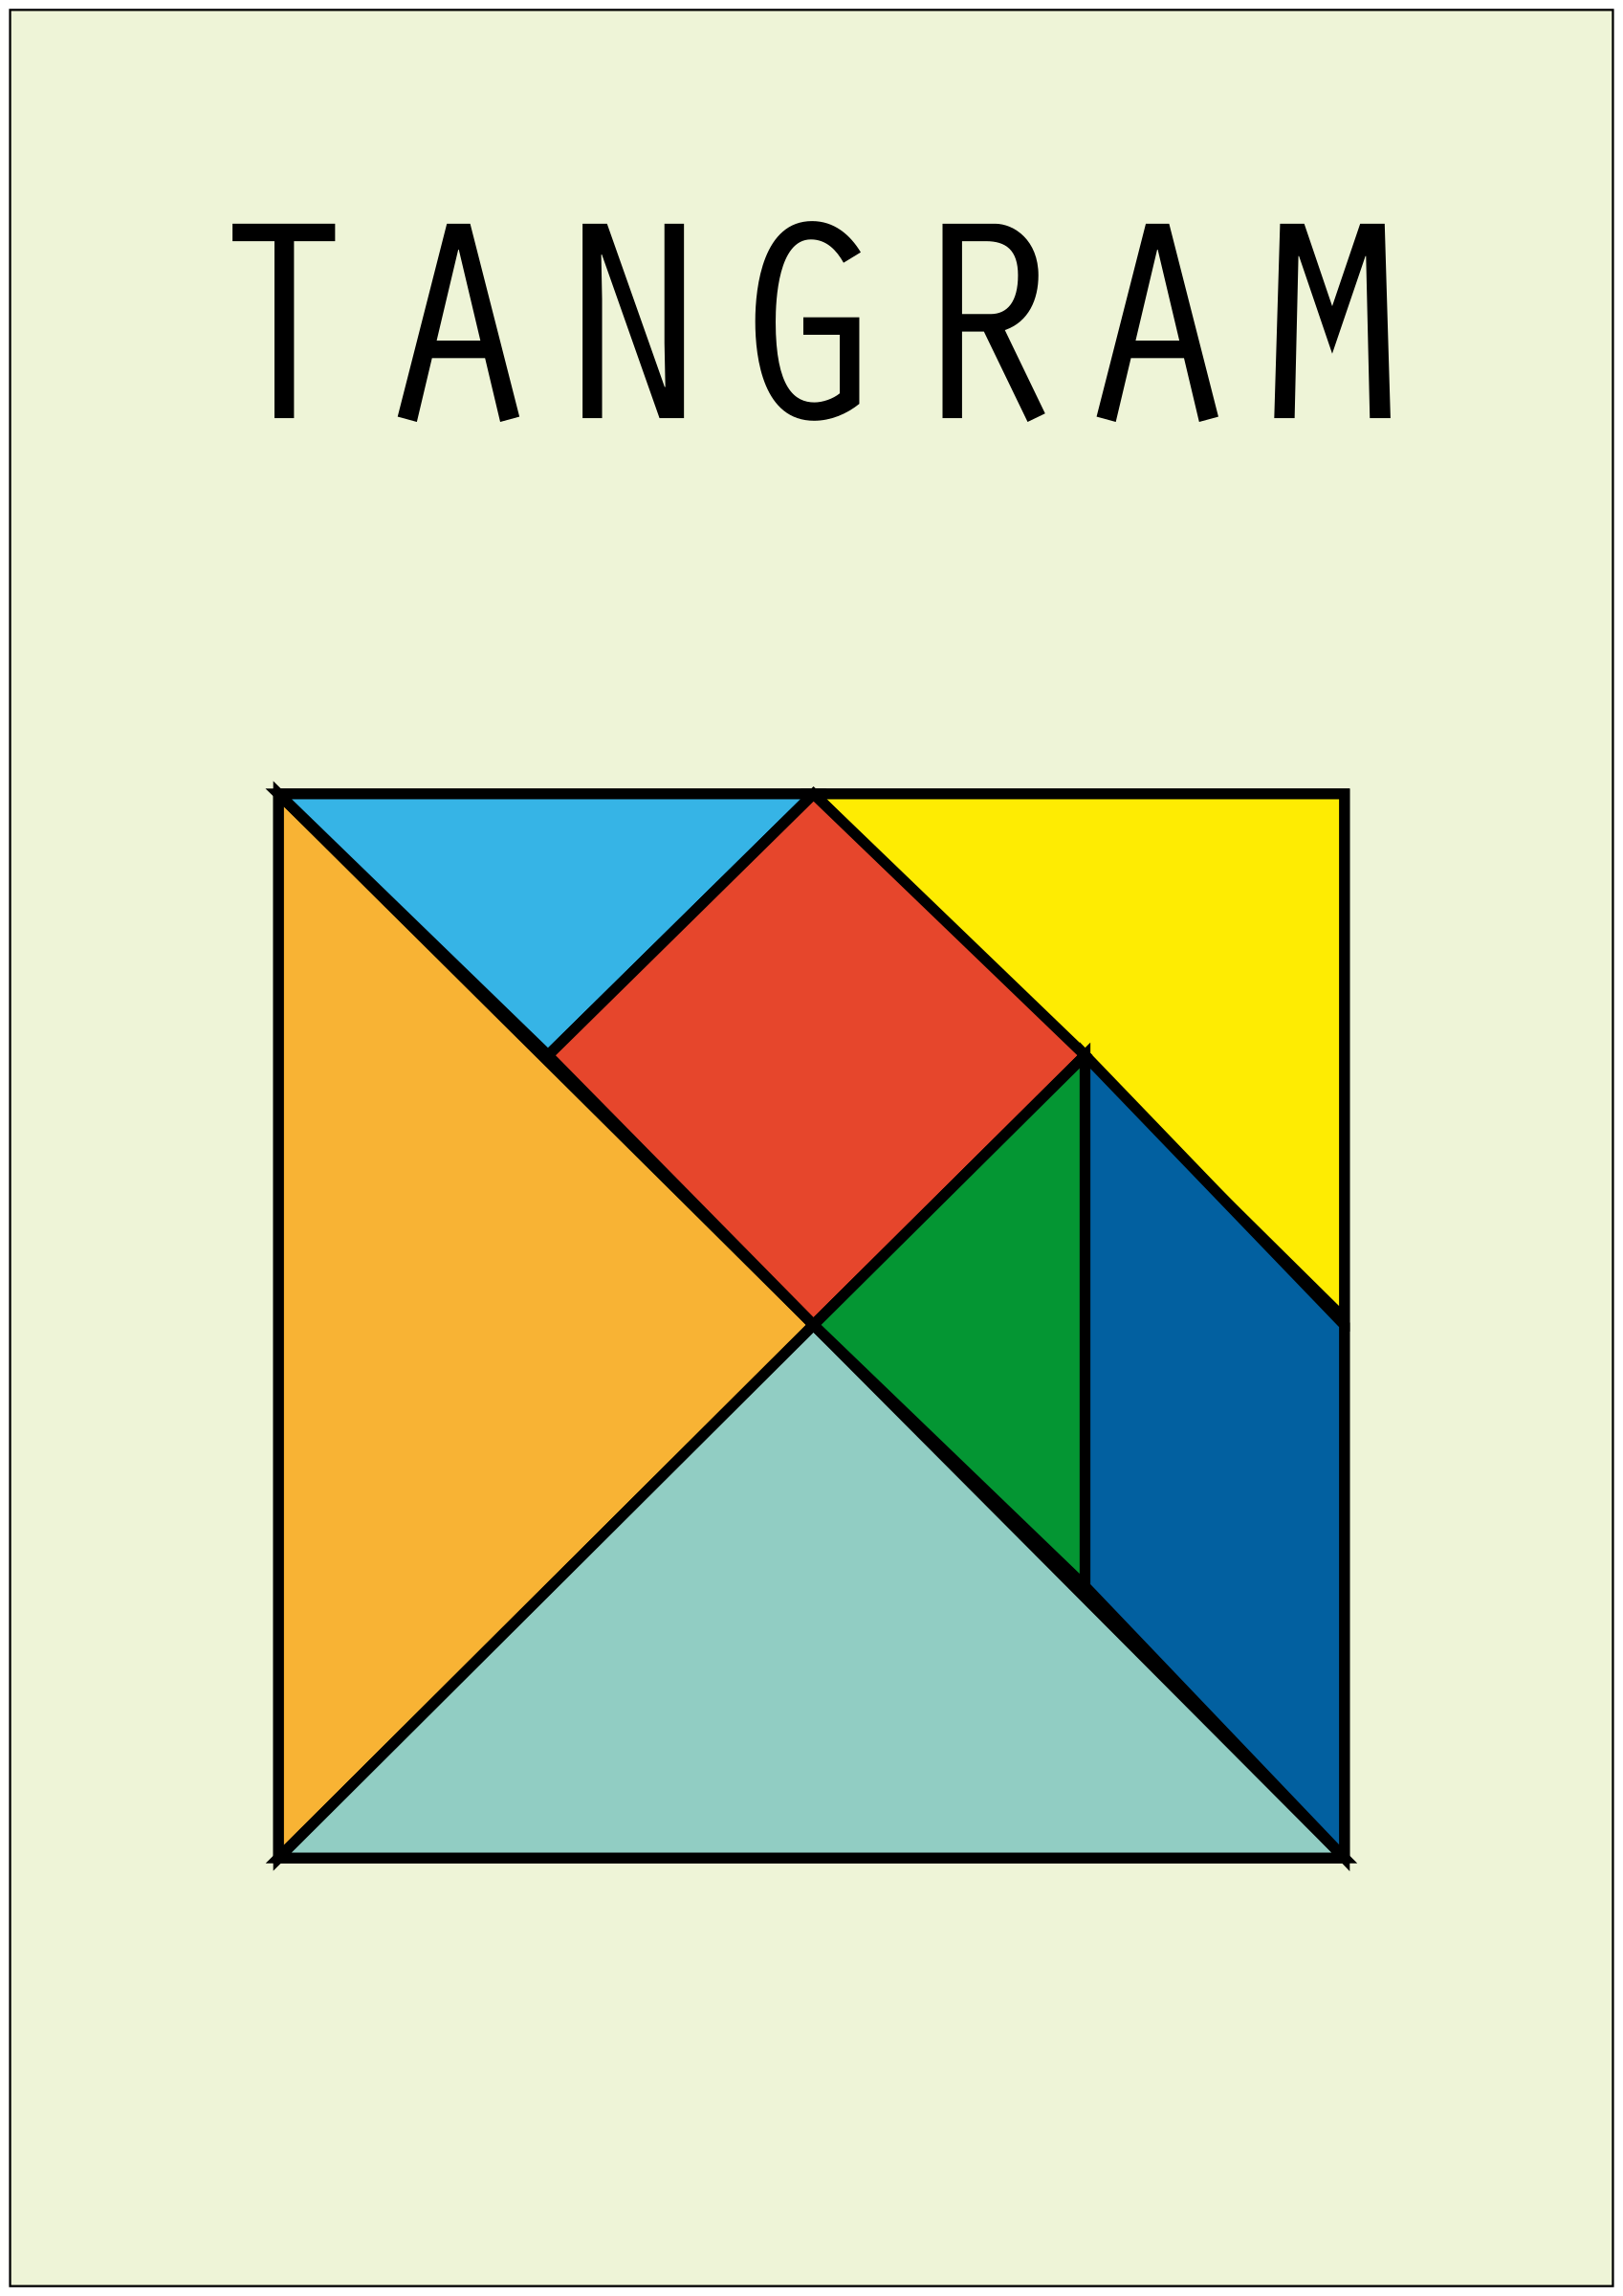 TANGRAM by dordy